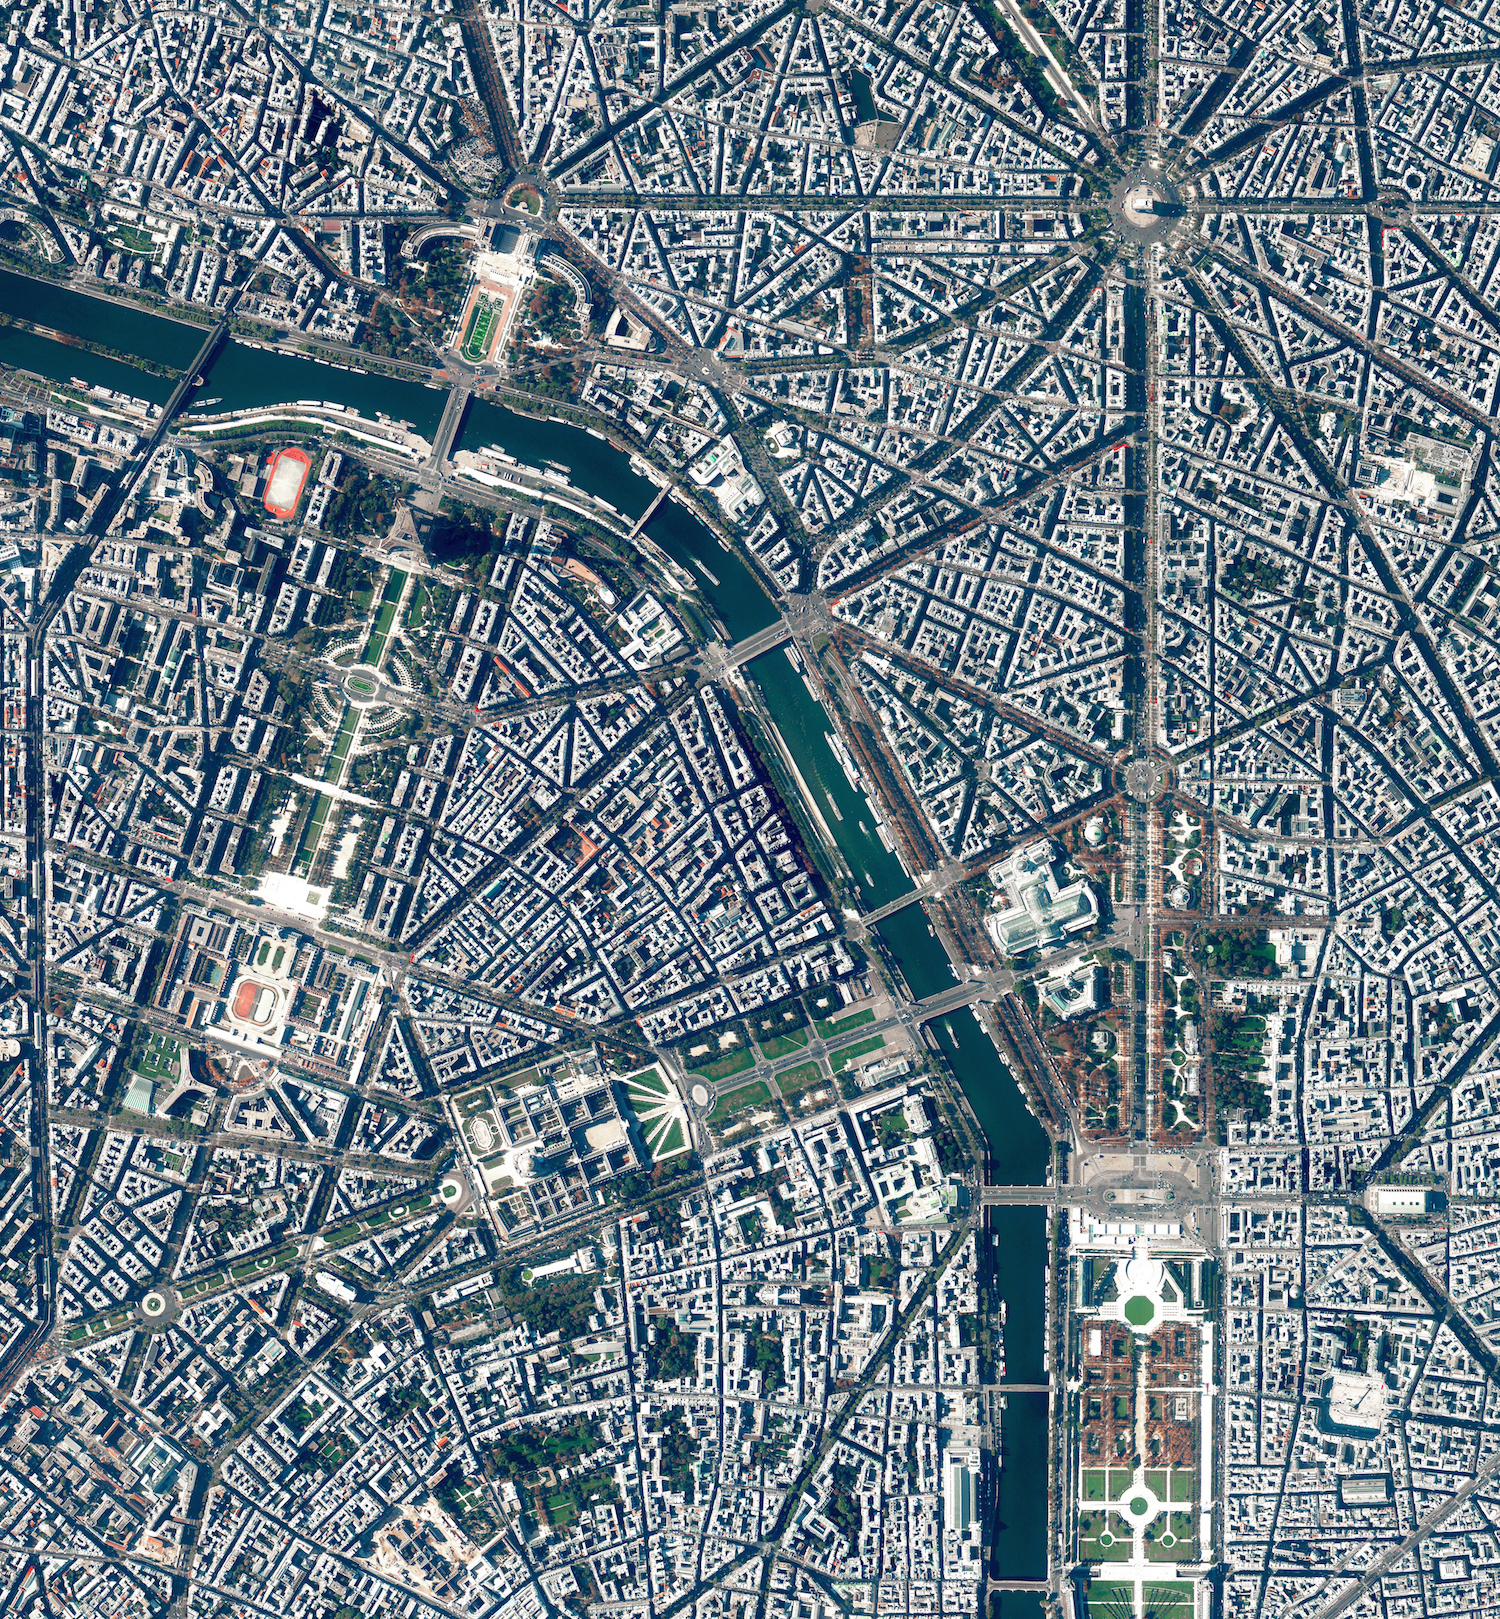 6/2/2017  Paris, France  48.858588, 2.341184     Paris was the site of the 2016 Climate Agreement signed by 192 countries across the globe. The goal of the agreement is to unite as one planet to reduce the risks of global warming across our Earth. On June 1st, the United States became the first major nation to back out of the agreement, joining Syria (engaged in Civil War) & Nicaragua (did not think the agreement went far enough) as the only countries to not participate. /// Let's use this opportunity to come together and start a discussion about what we can do to create the smarter, sustainable future that our planet deserves.